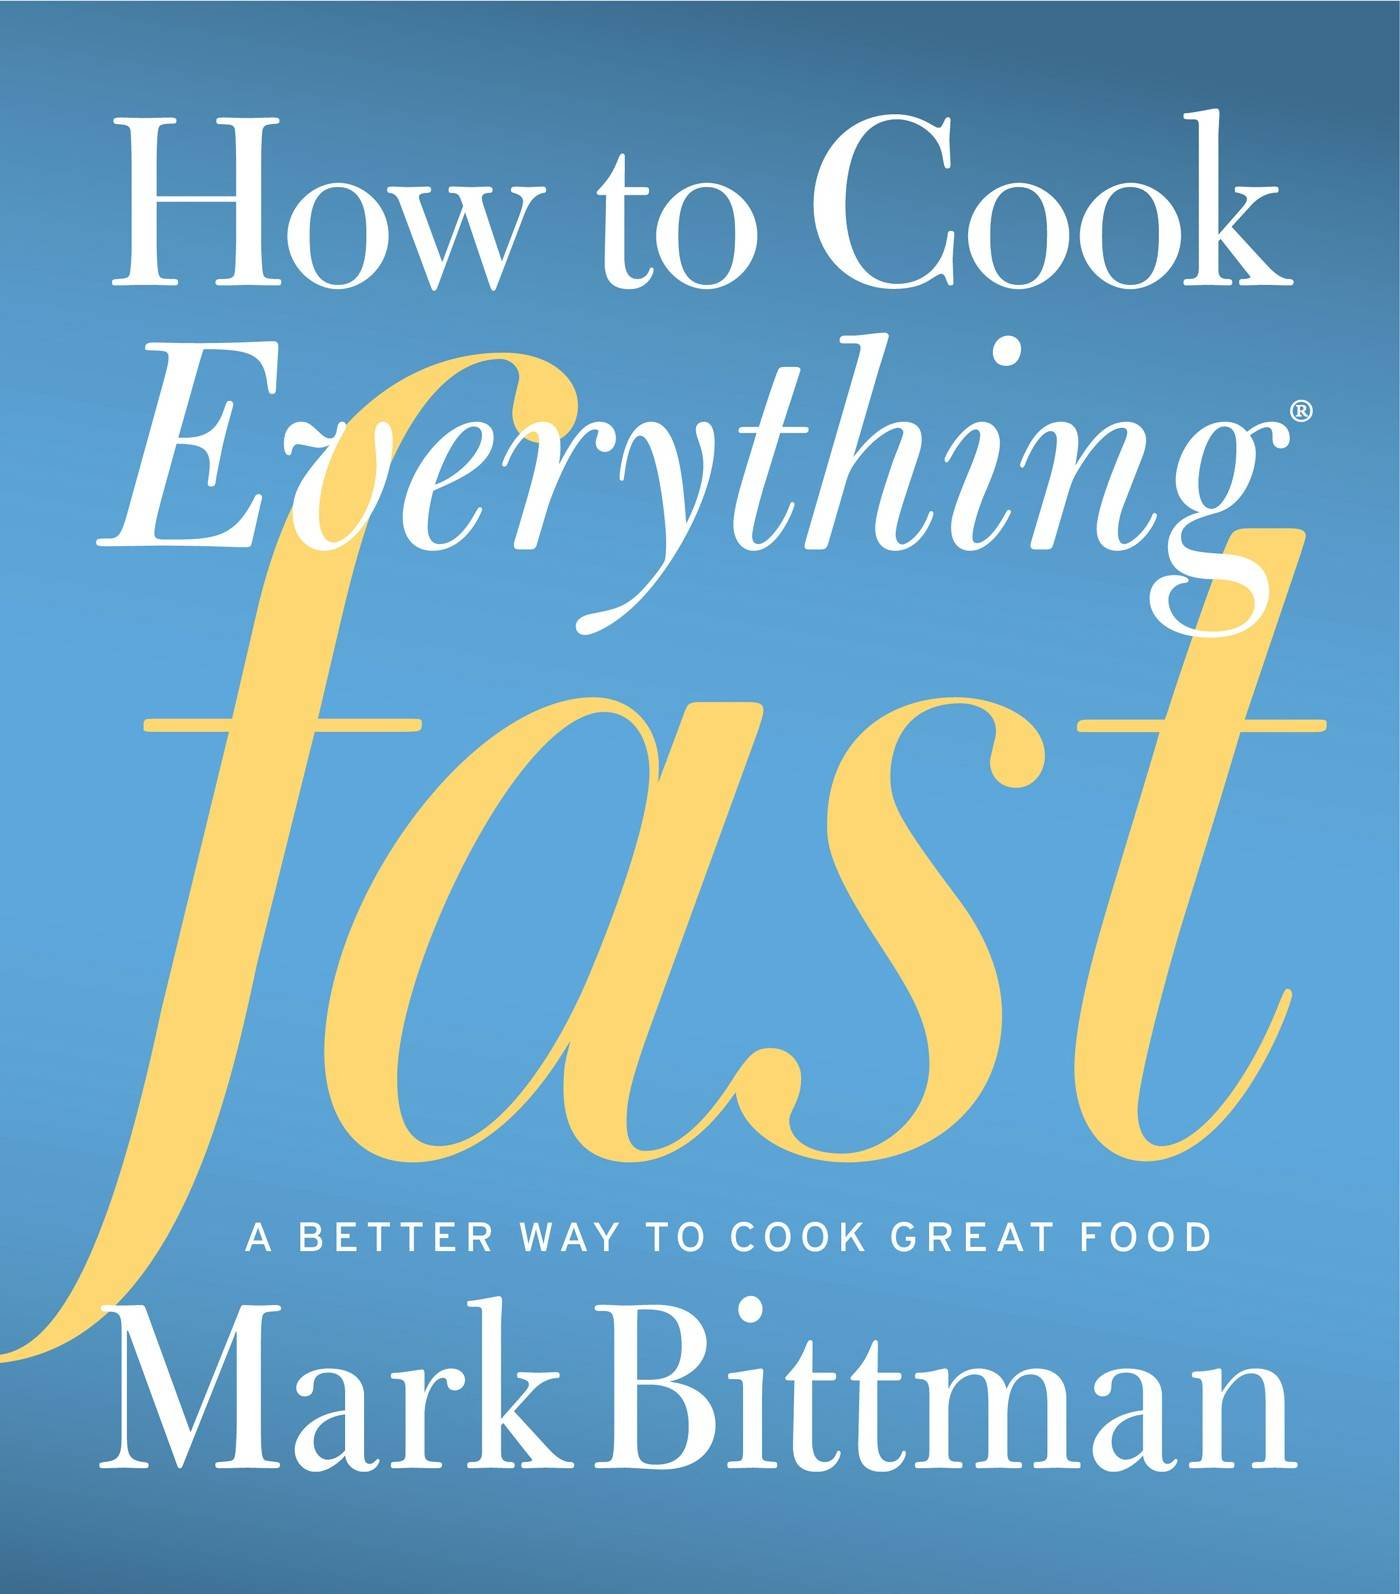 """How to Cook Everything Fast"" by Mark Bittman"